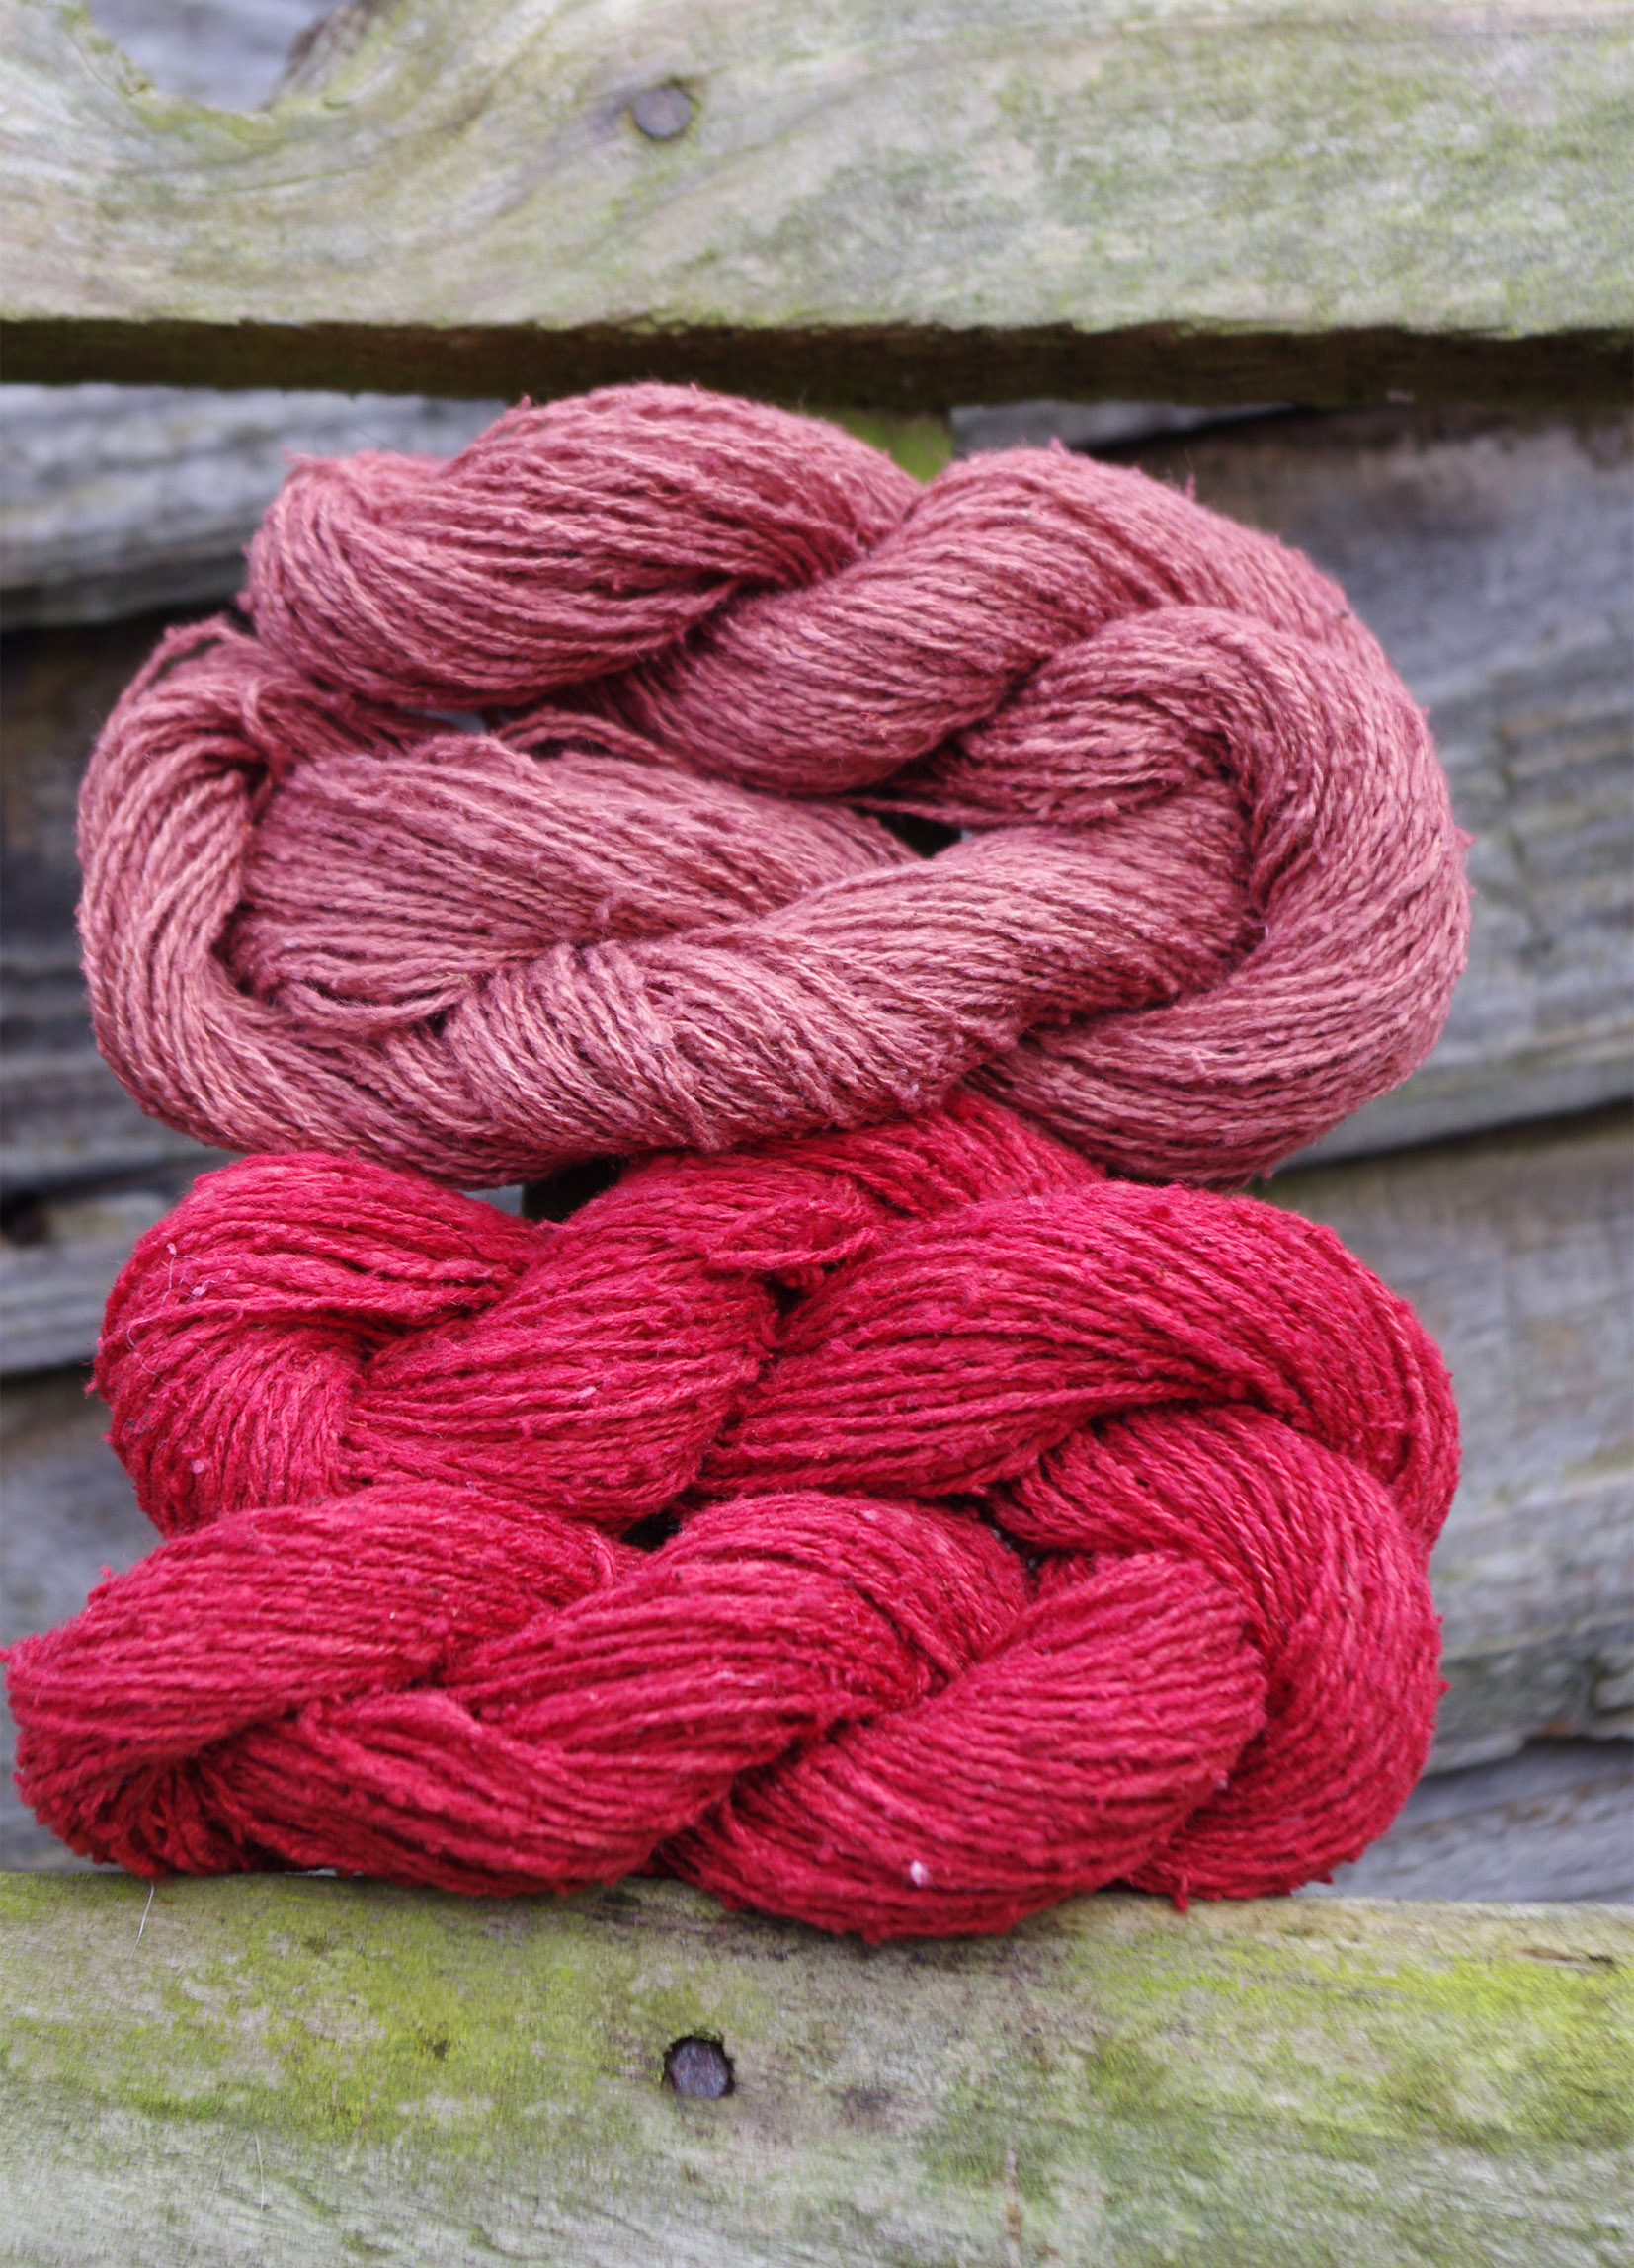 Two madder dyed silk skeins